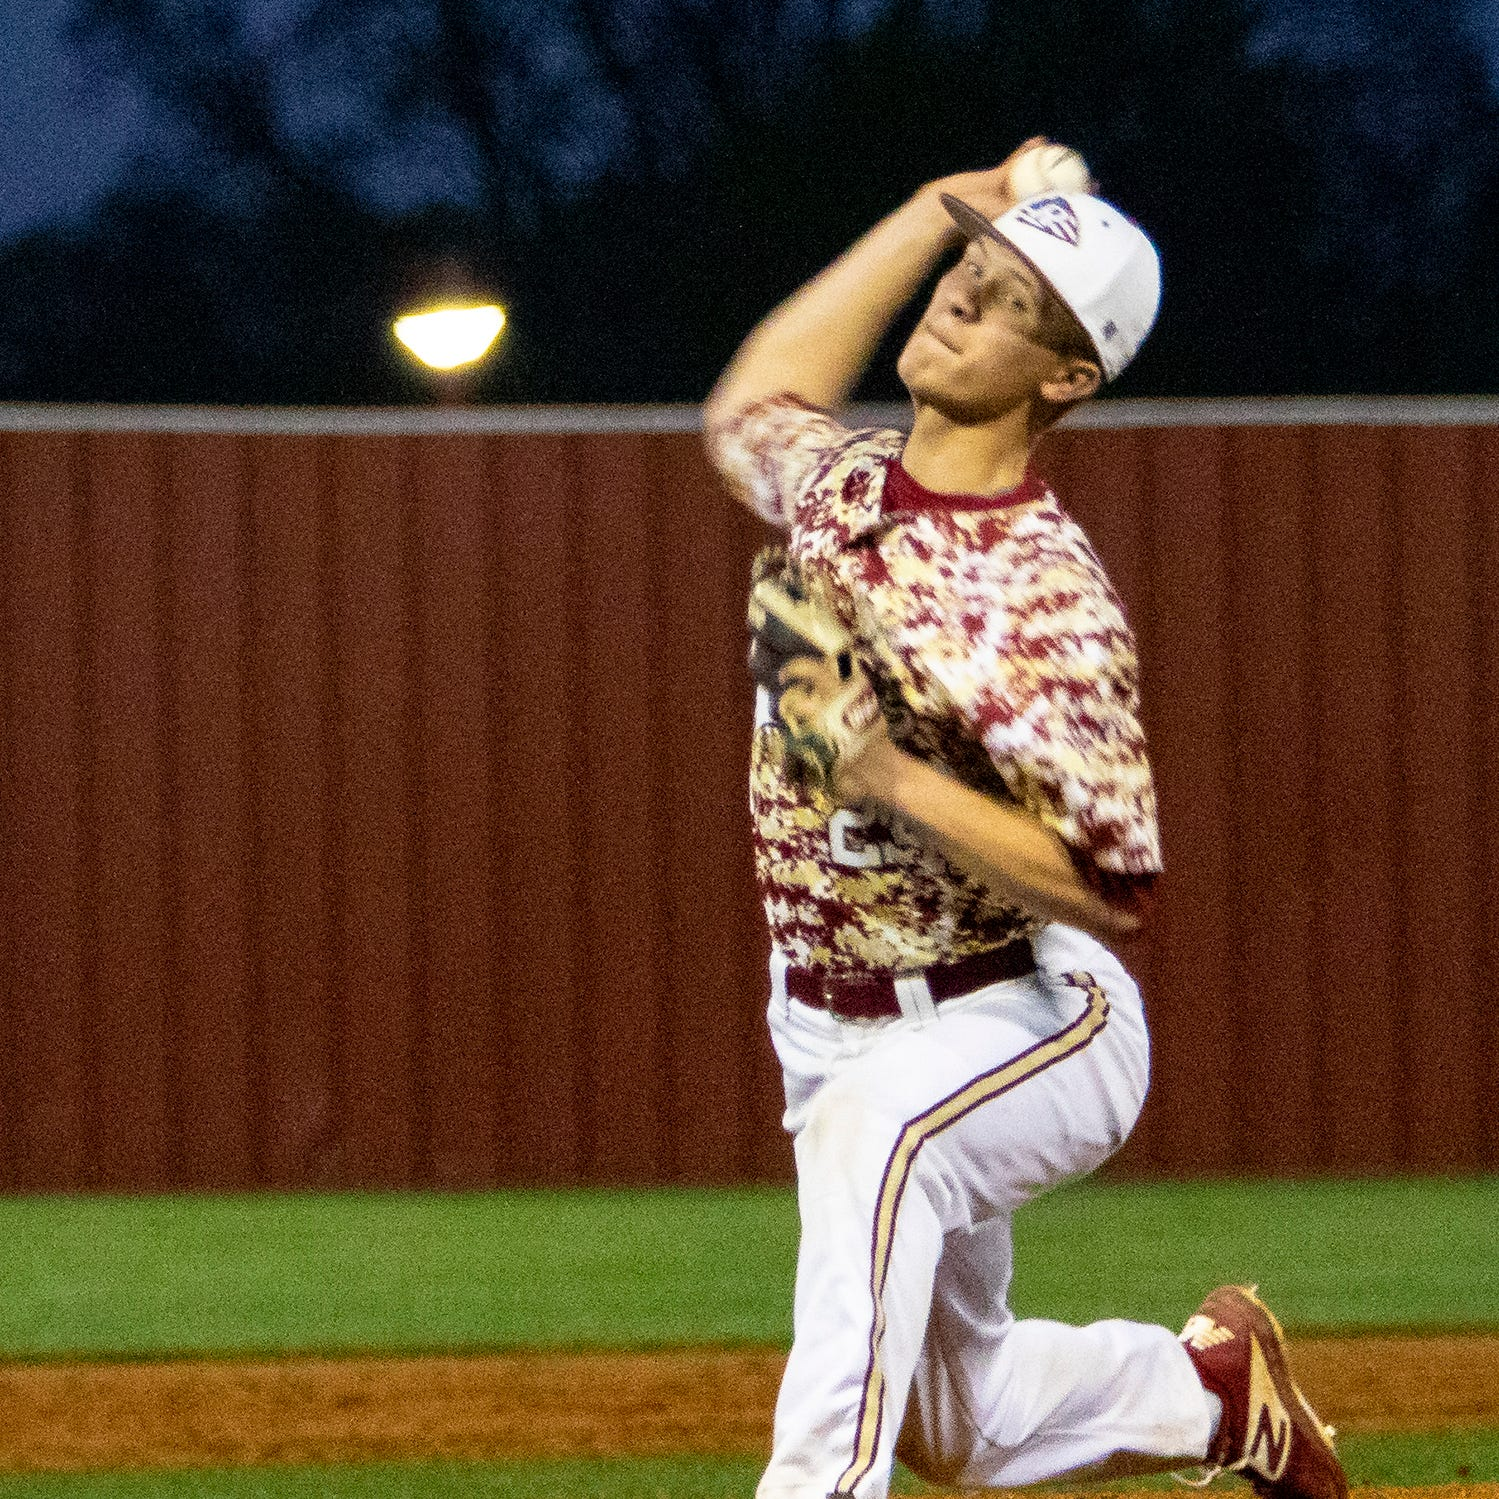 Riverdale's Daniel Dewey fires a pitch during Tuesday's win over La Vergne.